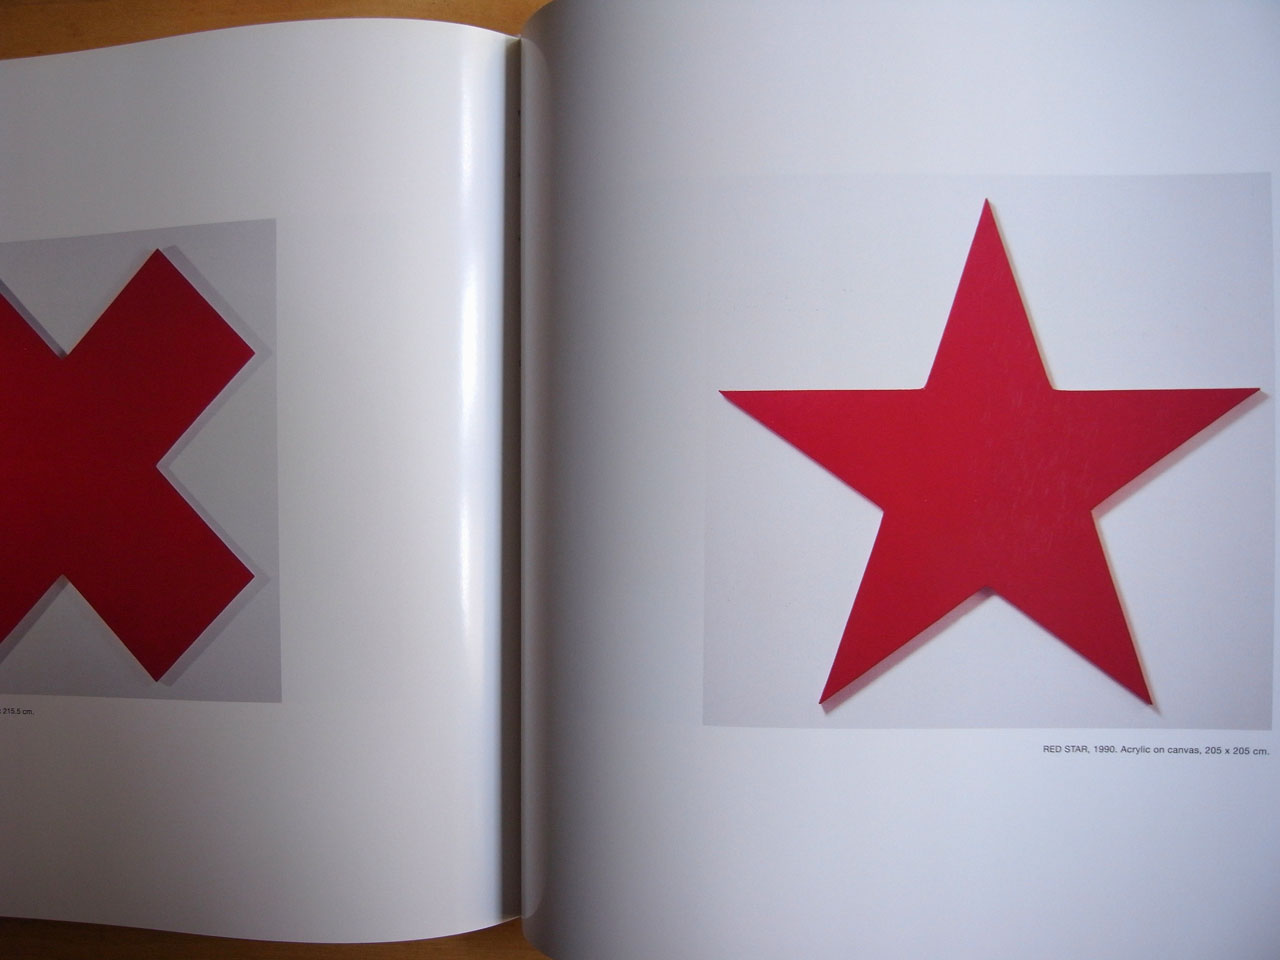 red-star-1990